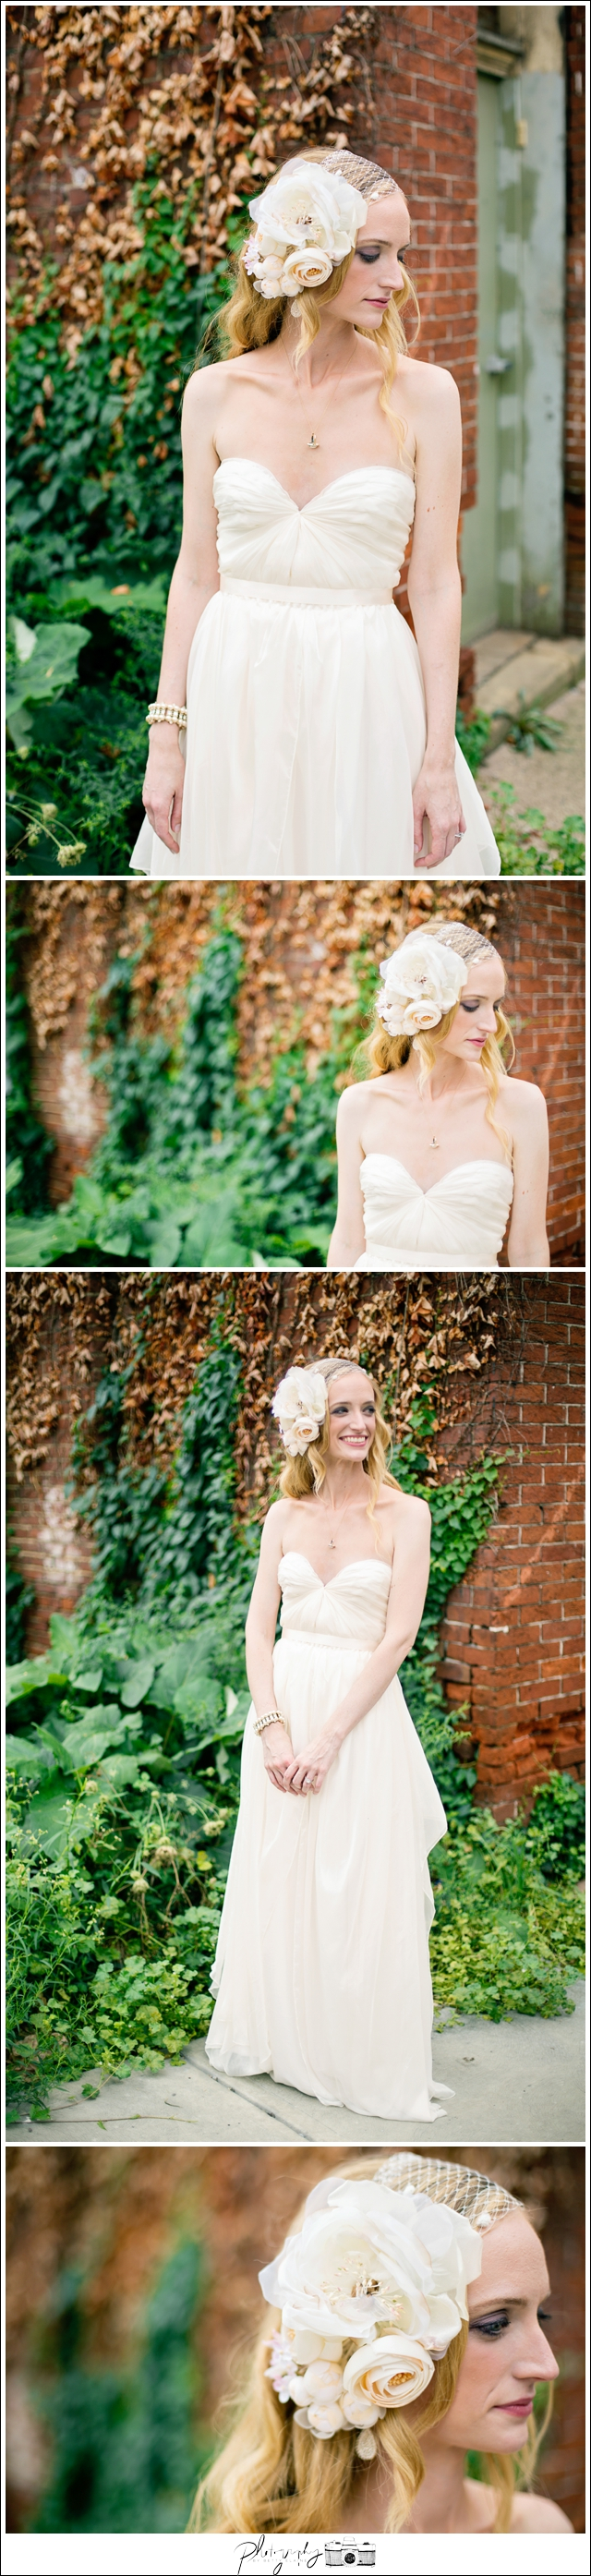 26-Bridal-Portraits-Twigs-&-Honey-Bride-North-Shore-Pittsburgh-Destination-Seattle-Wedding-Photography-by-Betty-Elaine